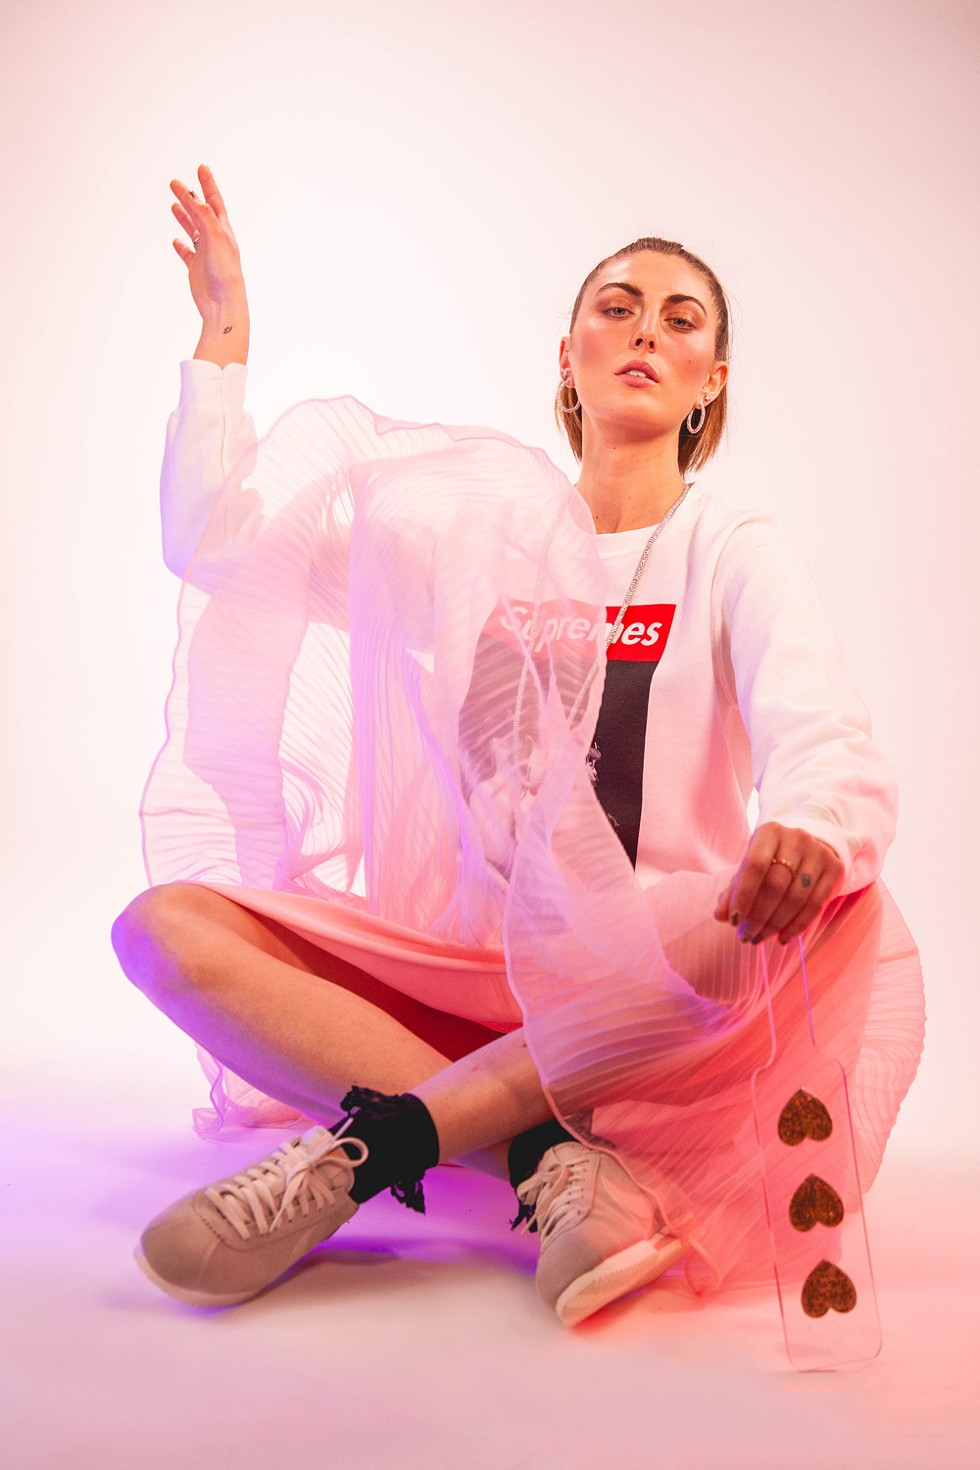 Impact play: Supremes crewneck sweatshirt, $60, SMFLD, 313-285-9564, buy.smplfd.com; Cortez sneakers, Nike, $90, 313-965-3319, nike.com; Pink Dream dress, $68, Shop Minnie Lou, @shopminnielou, 1418 Michigan Ave., Detroit; black ankle socks, $4.50, 248-541-3979; noirleather.com; diamond necklace, $27,000, hoop earrings, $999.99, pink studs, $1,499, multi-colored ring, $1,599, New World Diamonds, newworlddiamonds.com; heart paddle, $42, eatdarich.com. - MILES MARIE OF NOMADIC MADAM